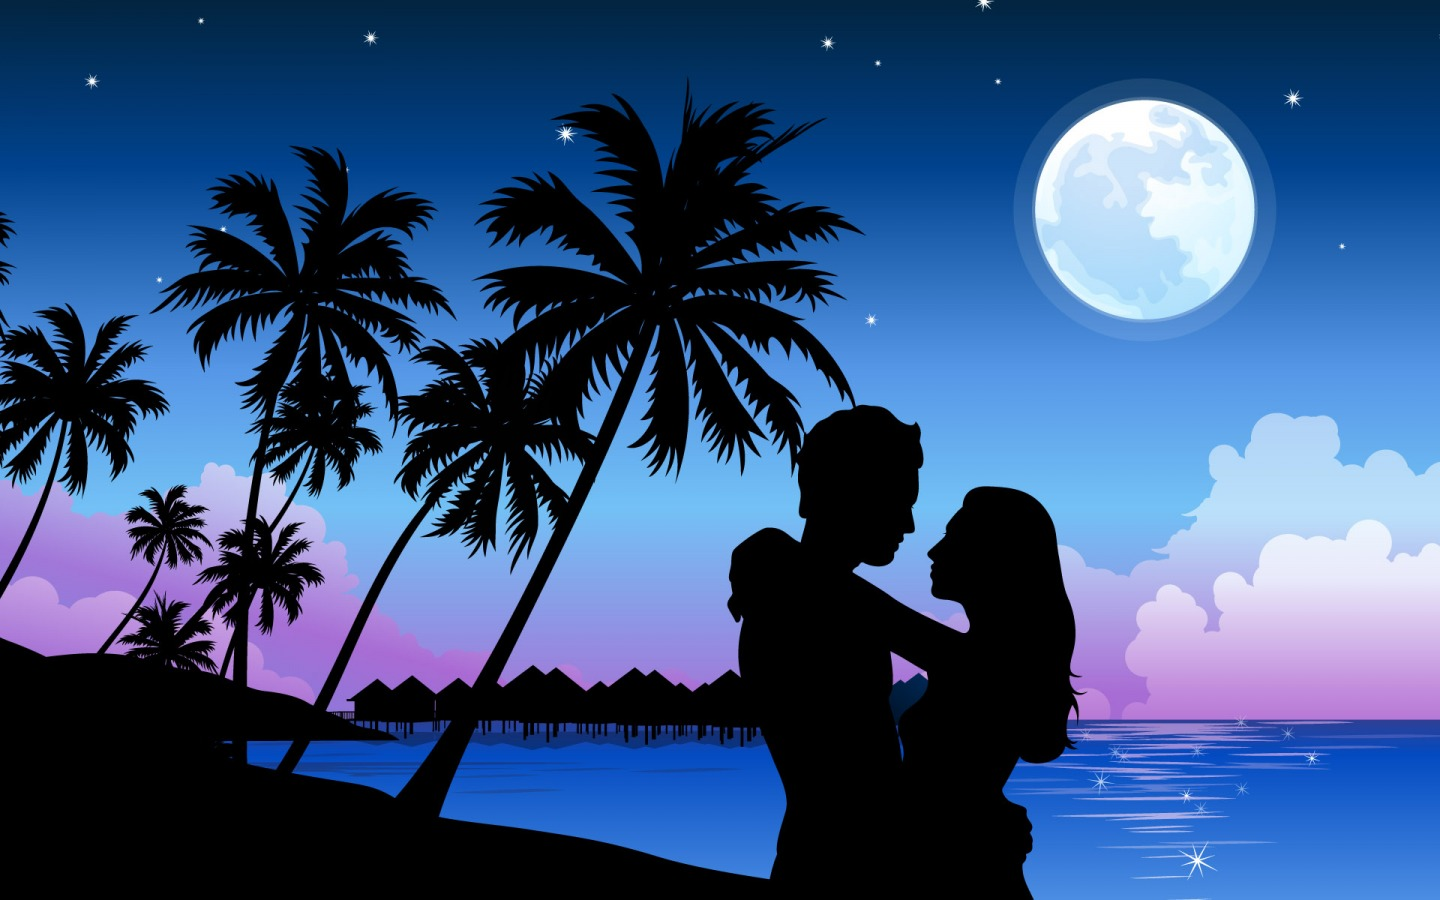 Romantic Beach Paradise PowerPoint background Available in 1440x900 1440x900